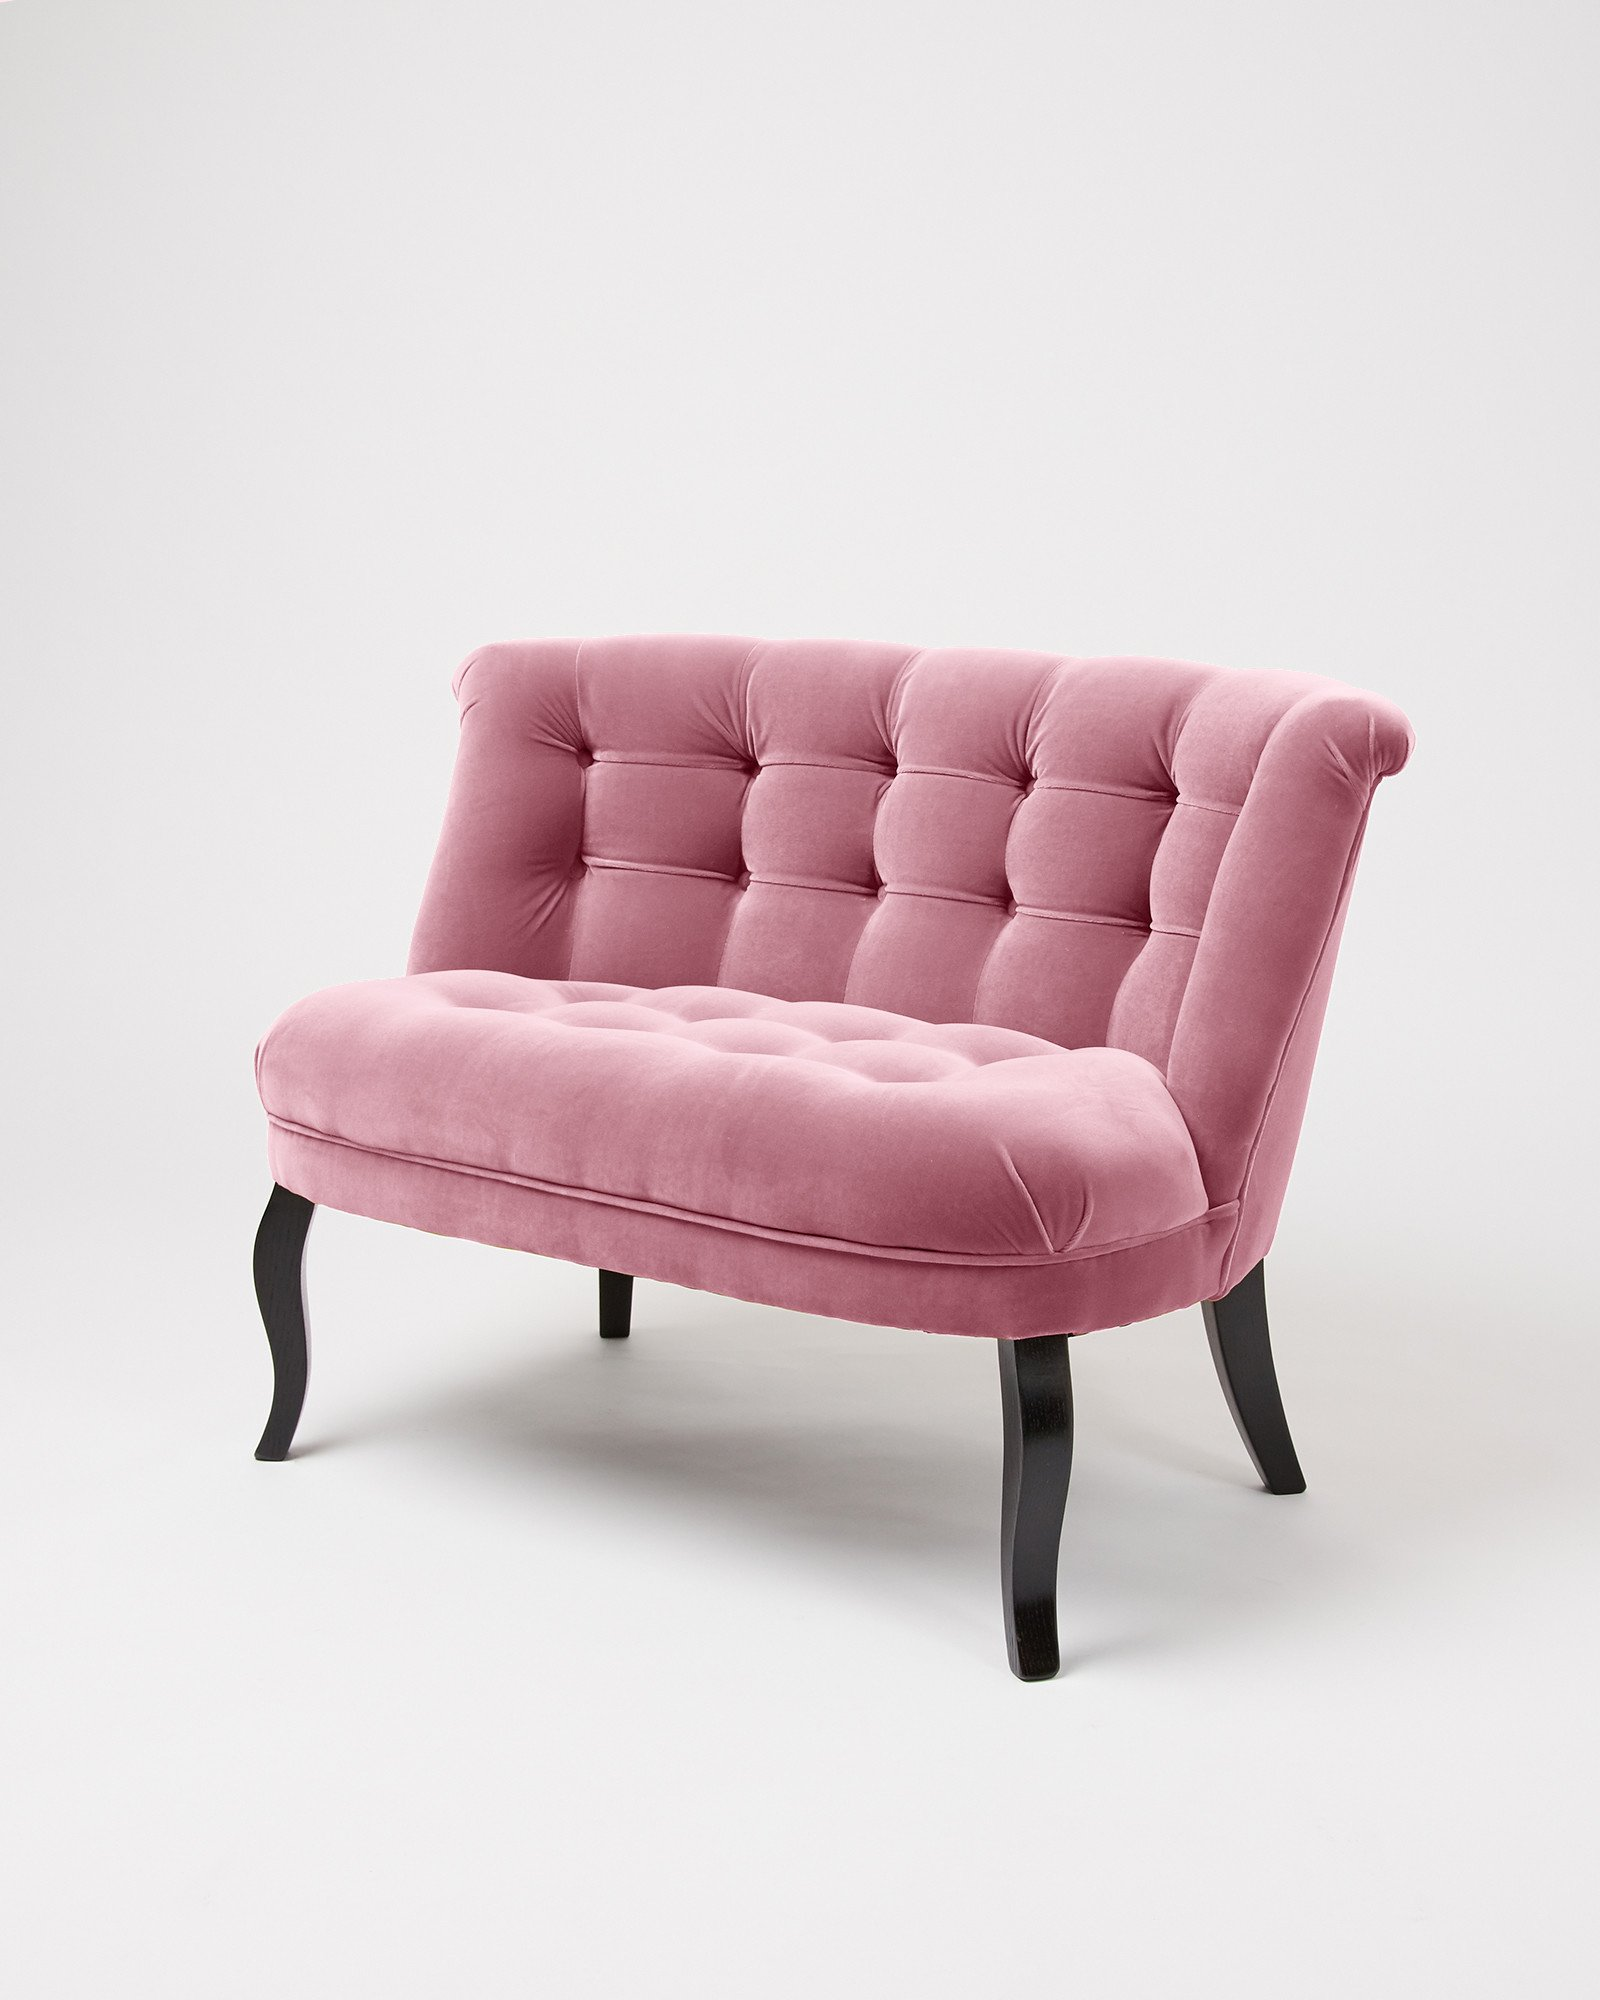 Velvet Pale Rose Pink Loveseat